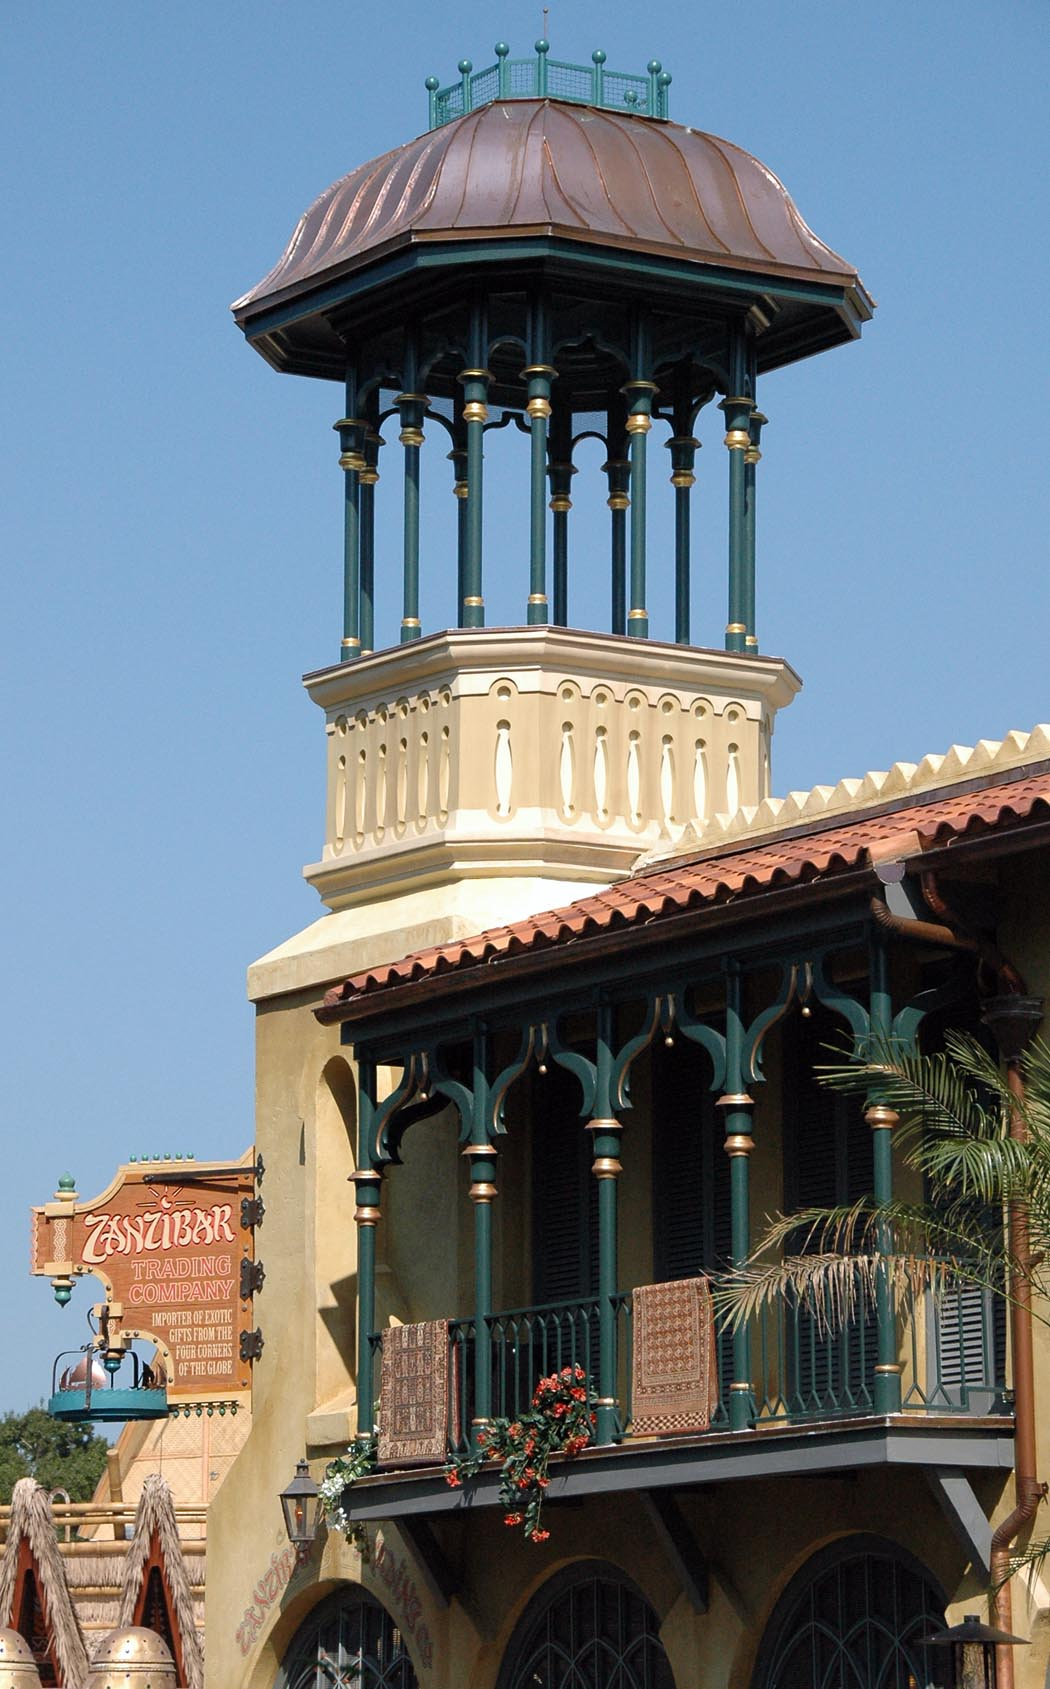 Today s disney photo is this a minaret a gator in naples for Architecture companies in florida